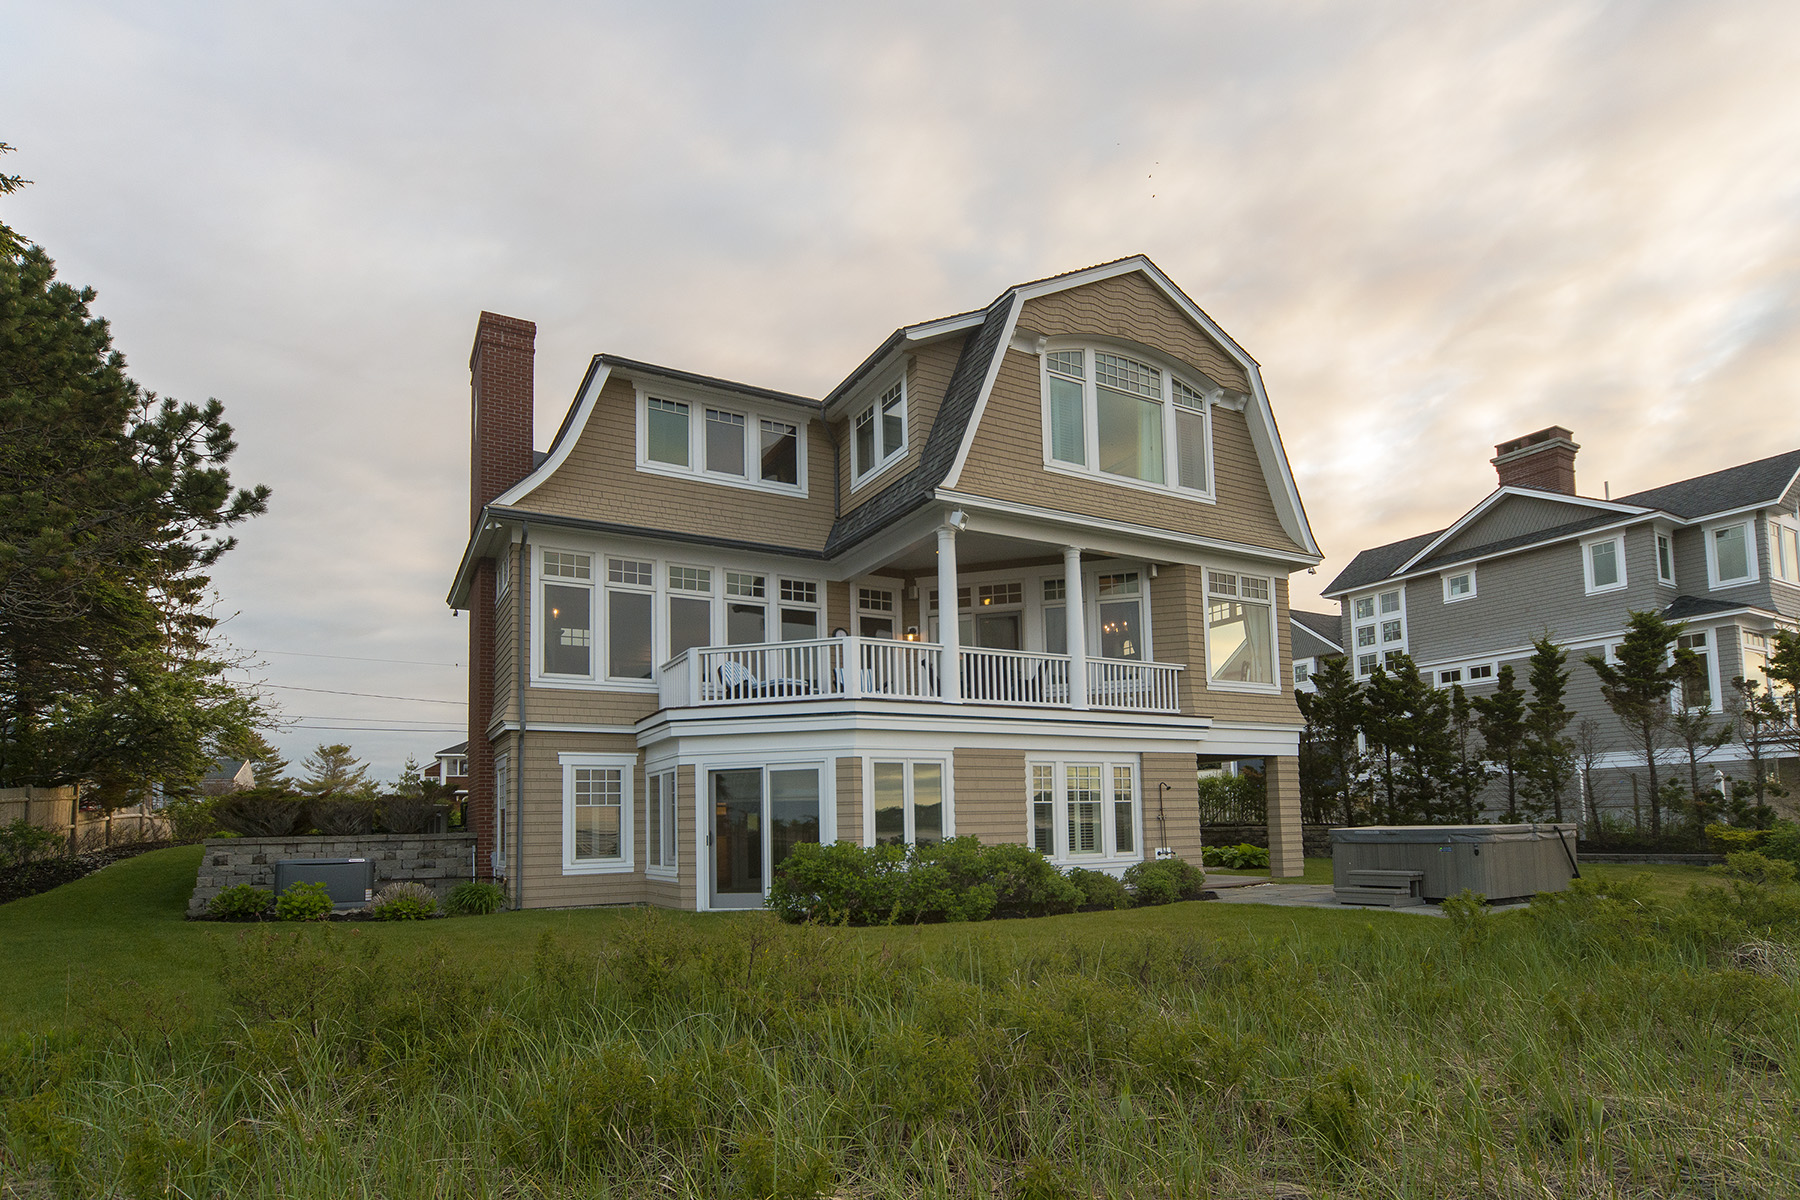 Single Family Home for Sale at 29 Pillsbury Drive Scarborough, Maine 04074 United States